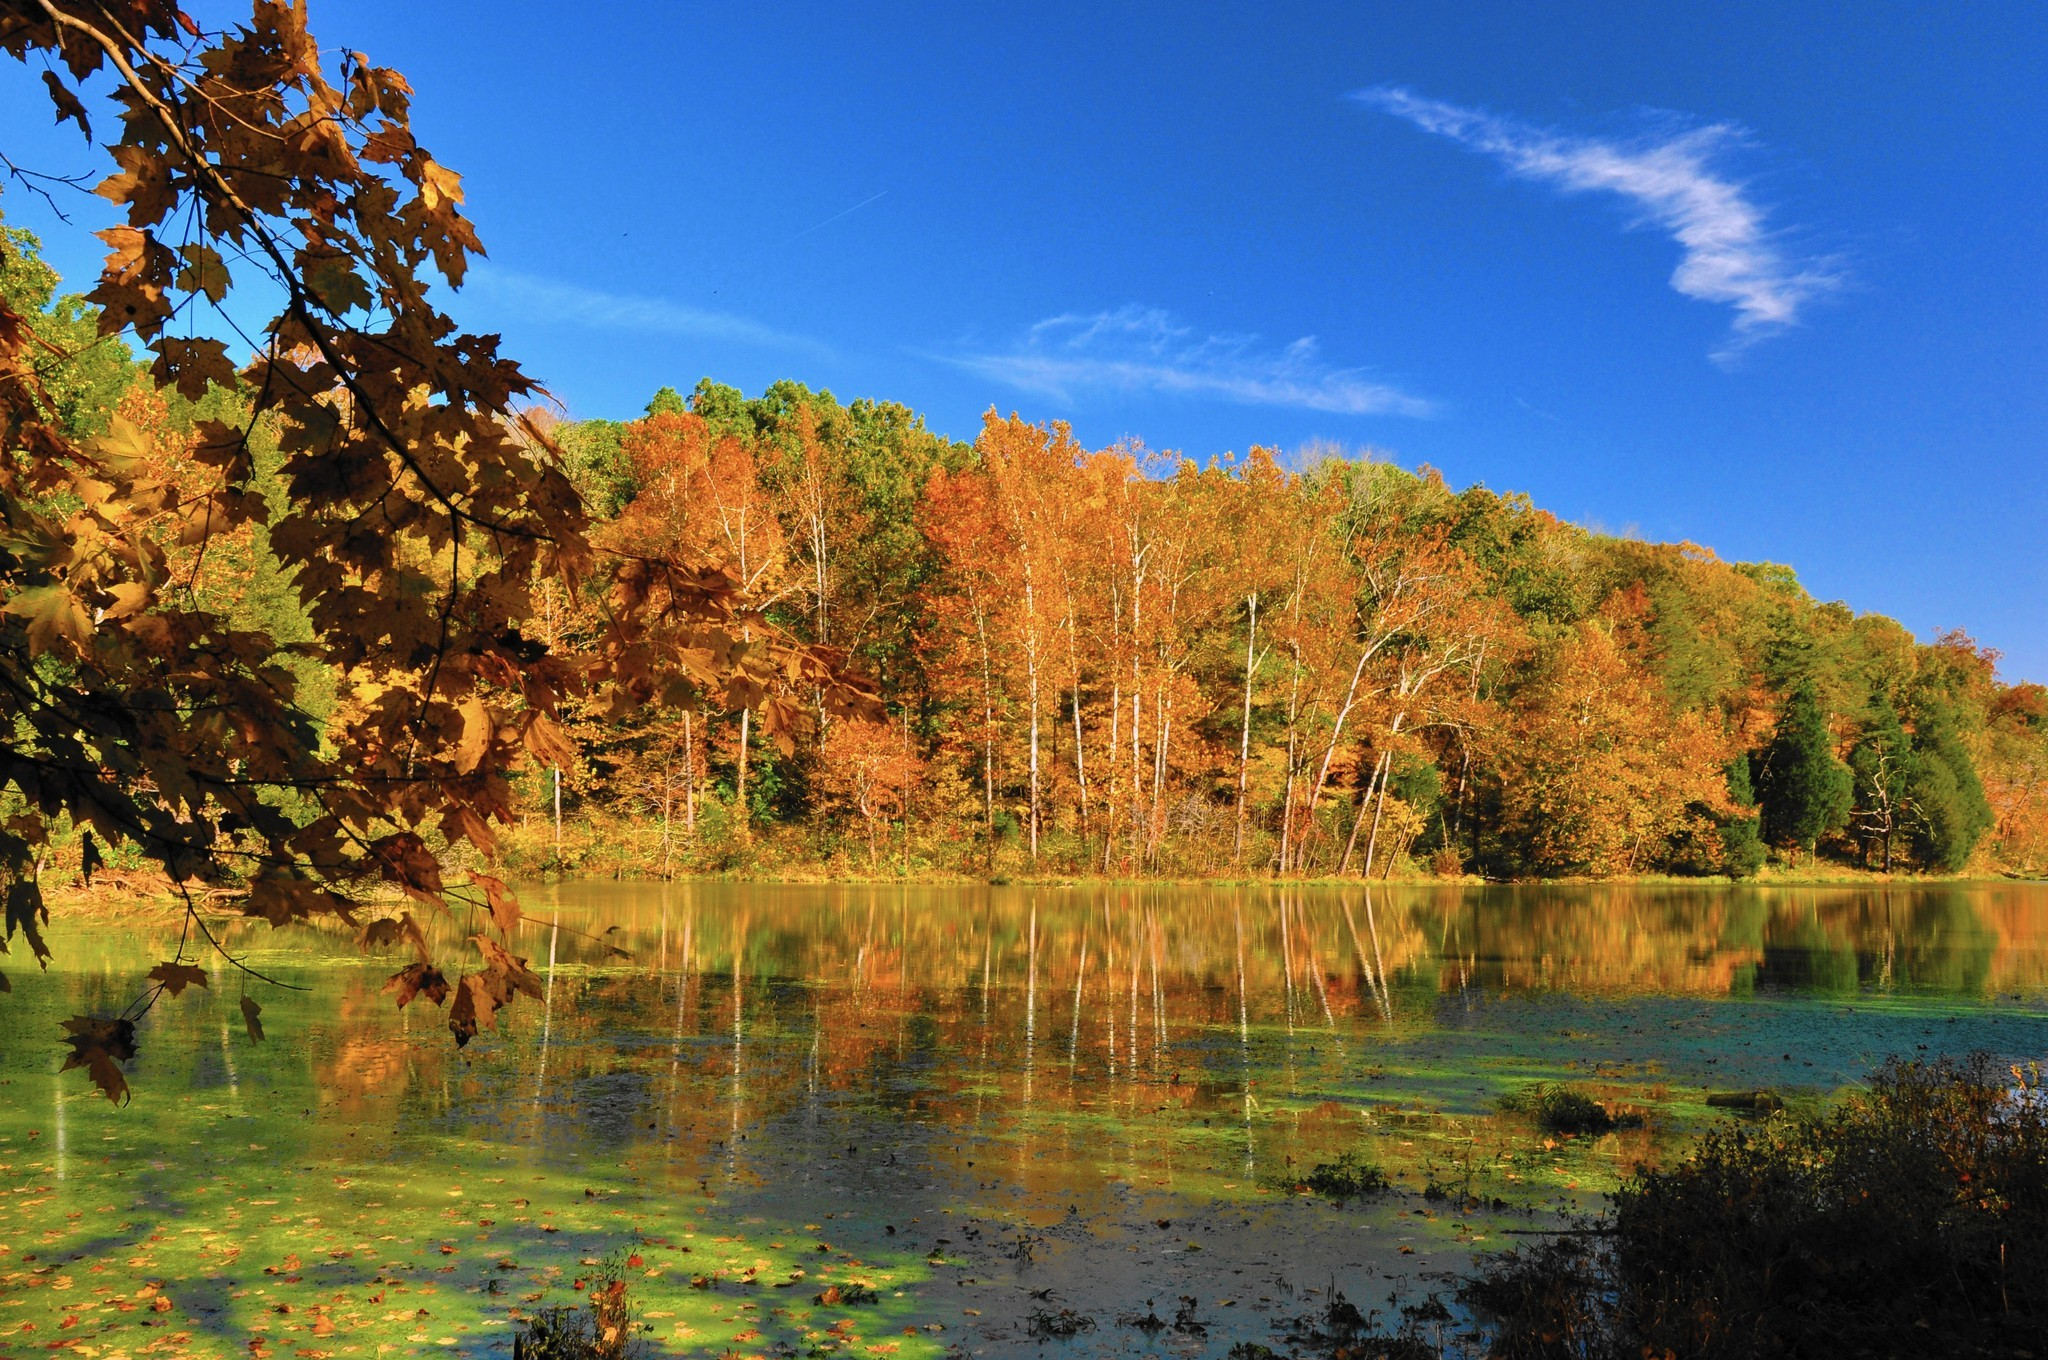 Fall River Wallpaper 3 Midwest State Parks Make For Colorful Autumn Escape